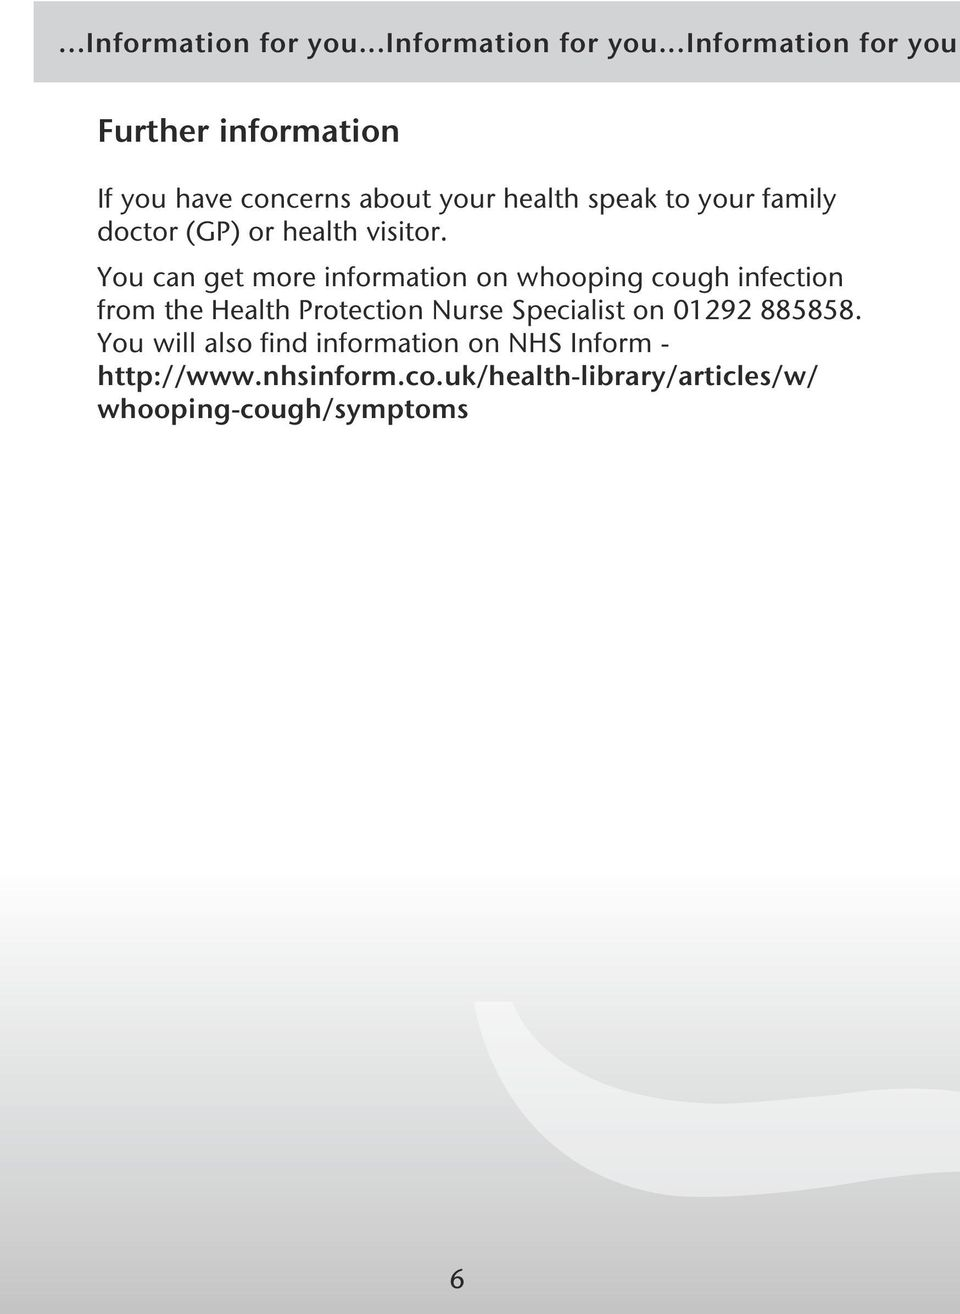 Further information If you have concerns about your health speak to your family doctor (GP) or health